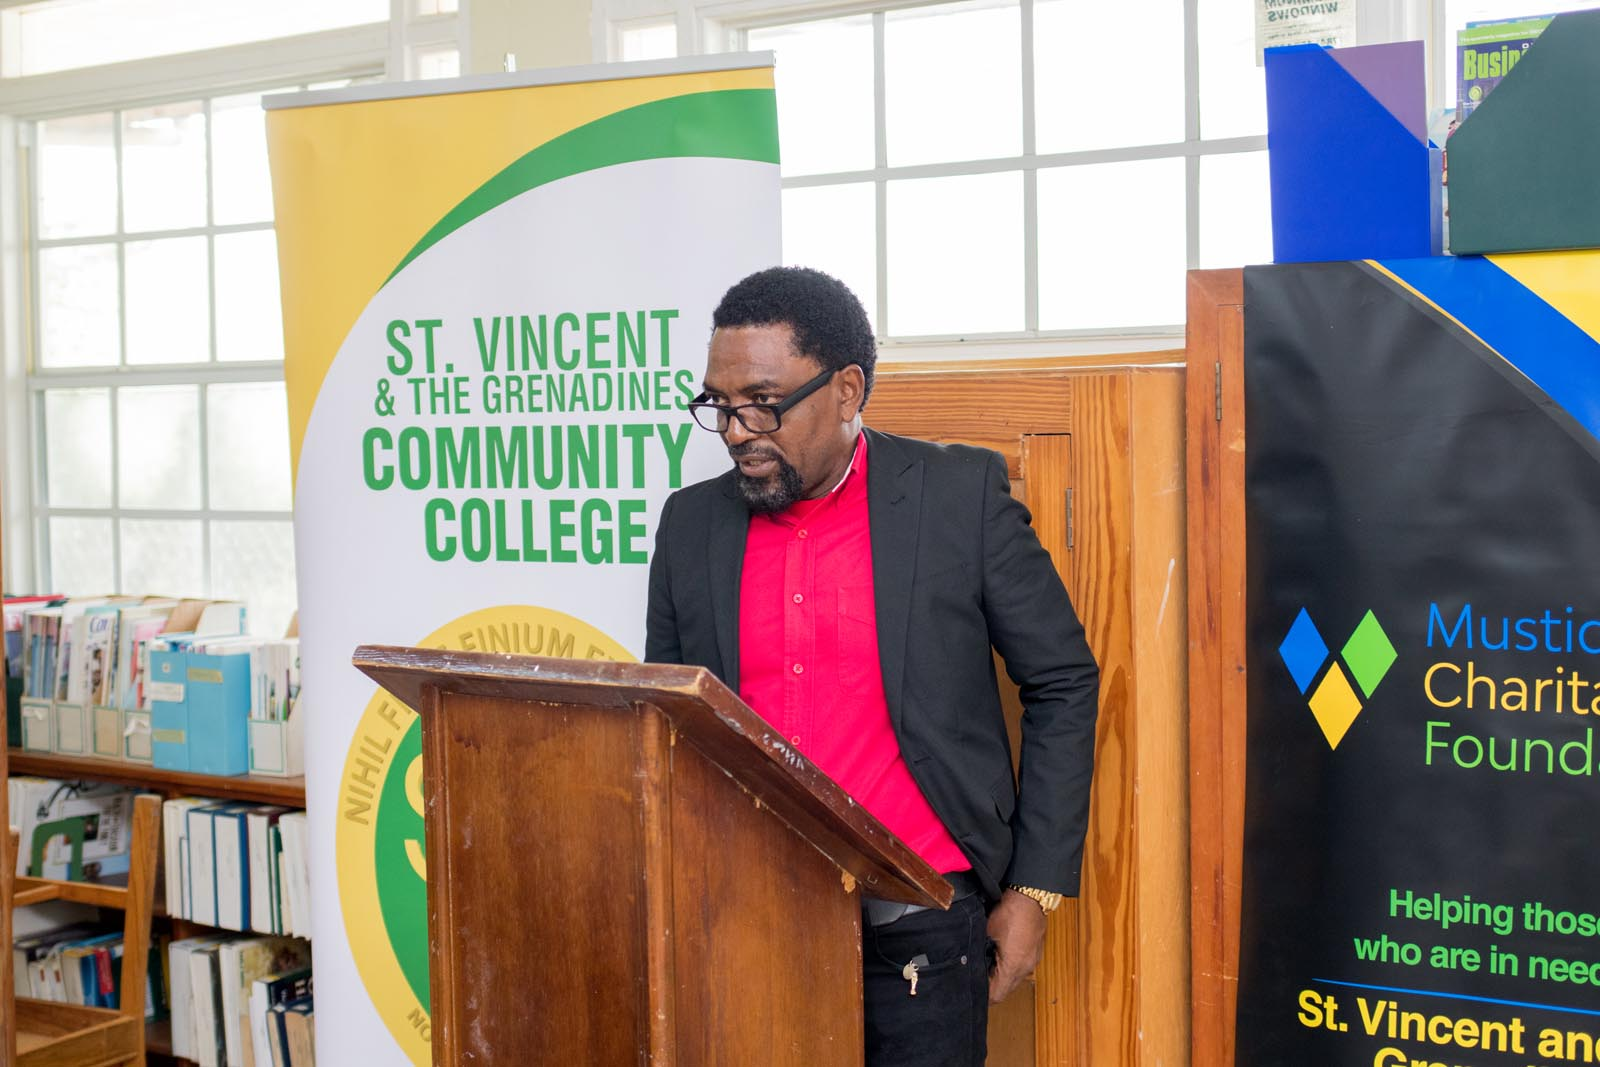 Osborne Bowens (Dean of the SVGCC: Division of Technical & Vocational Education)